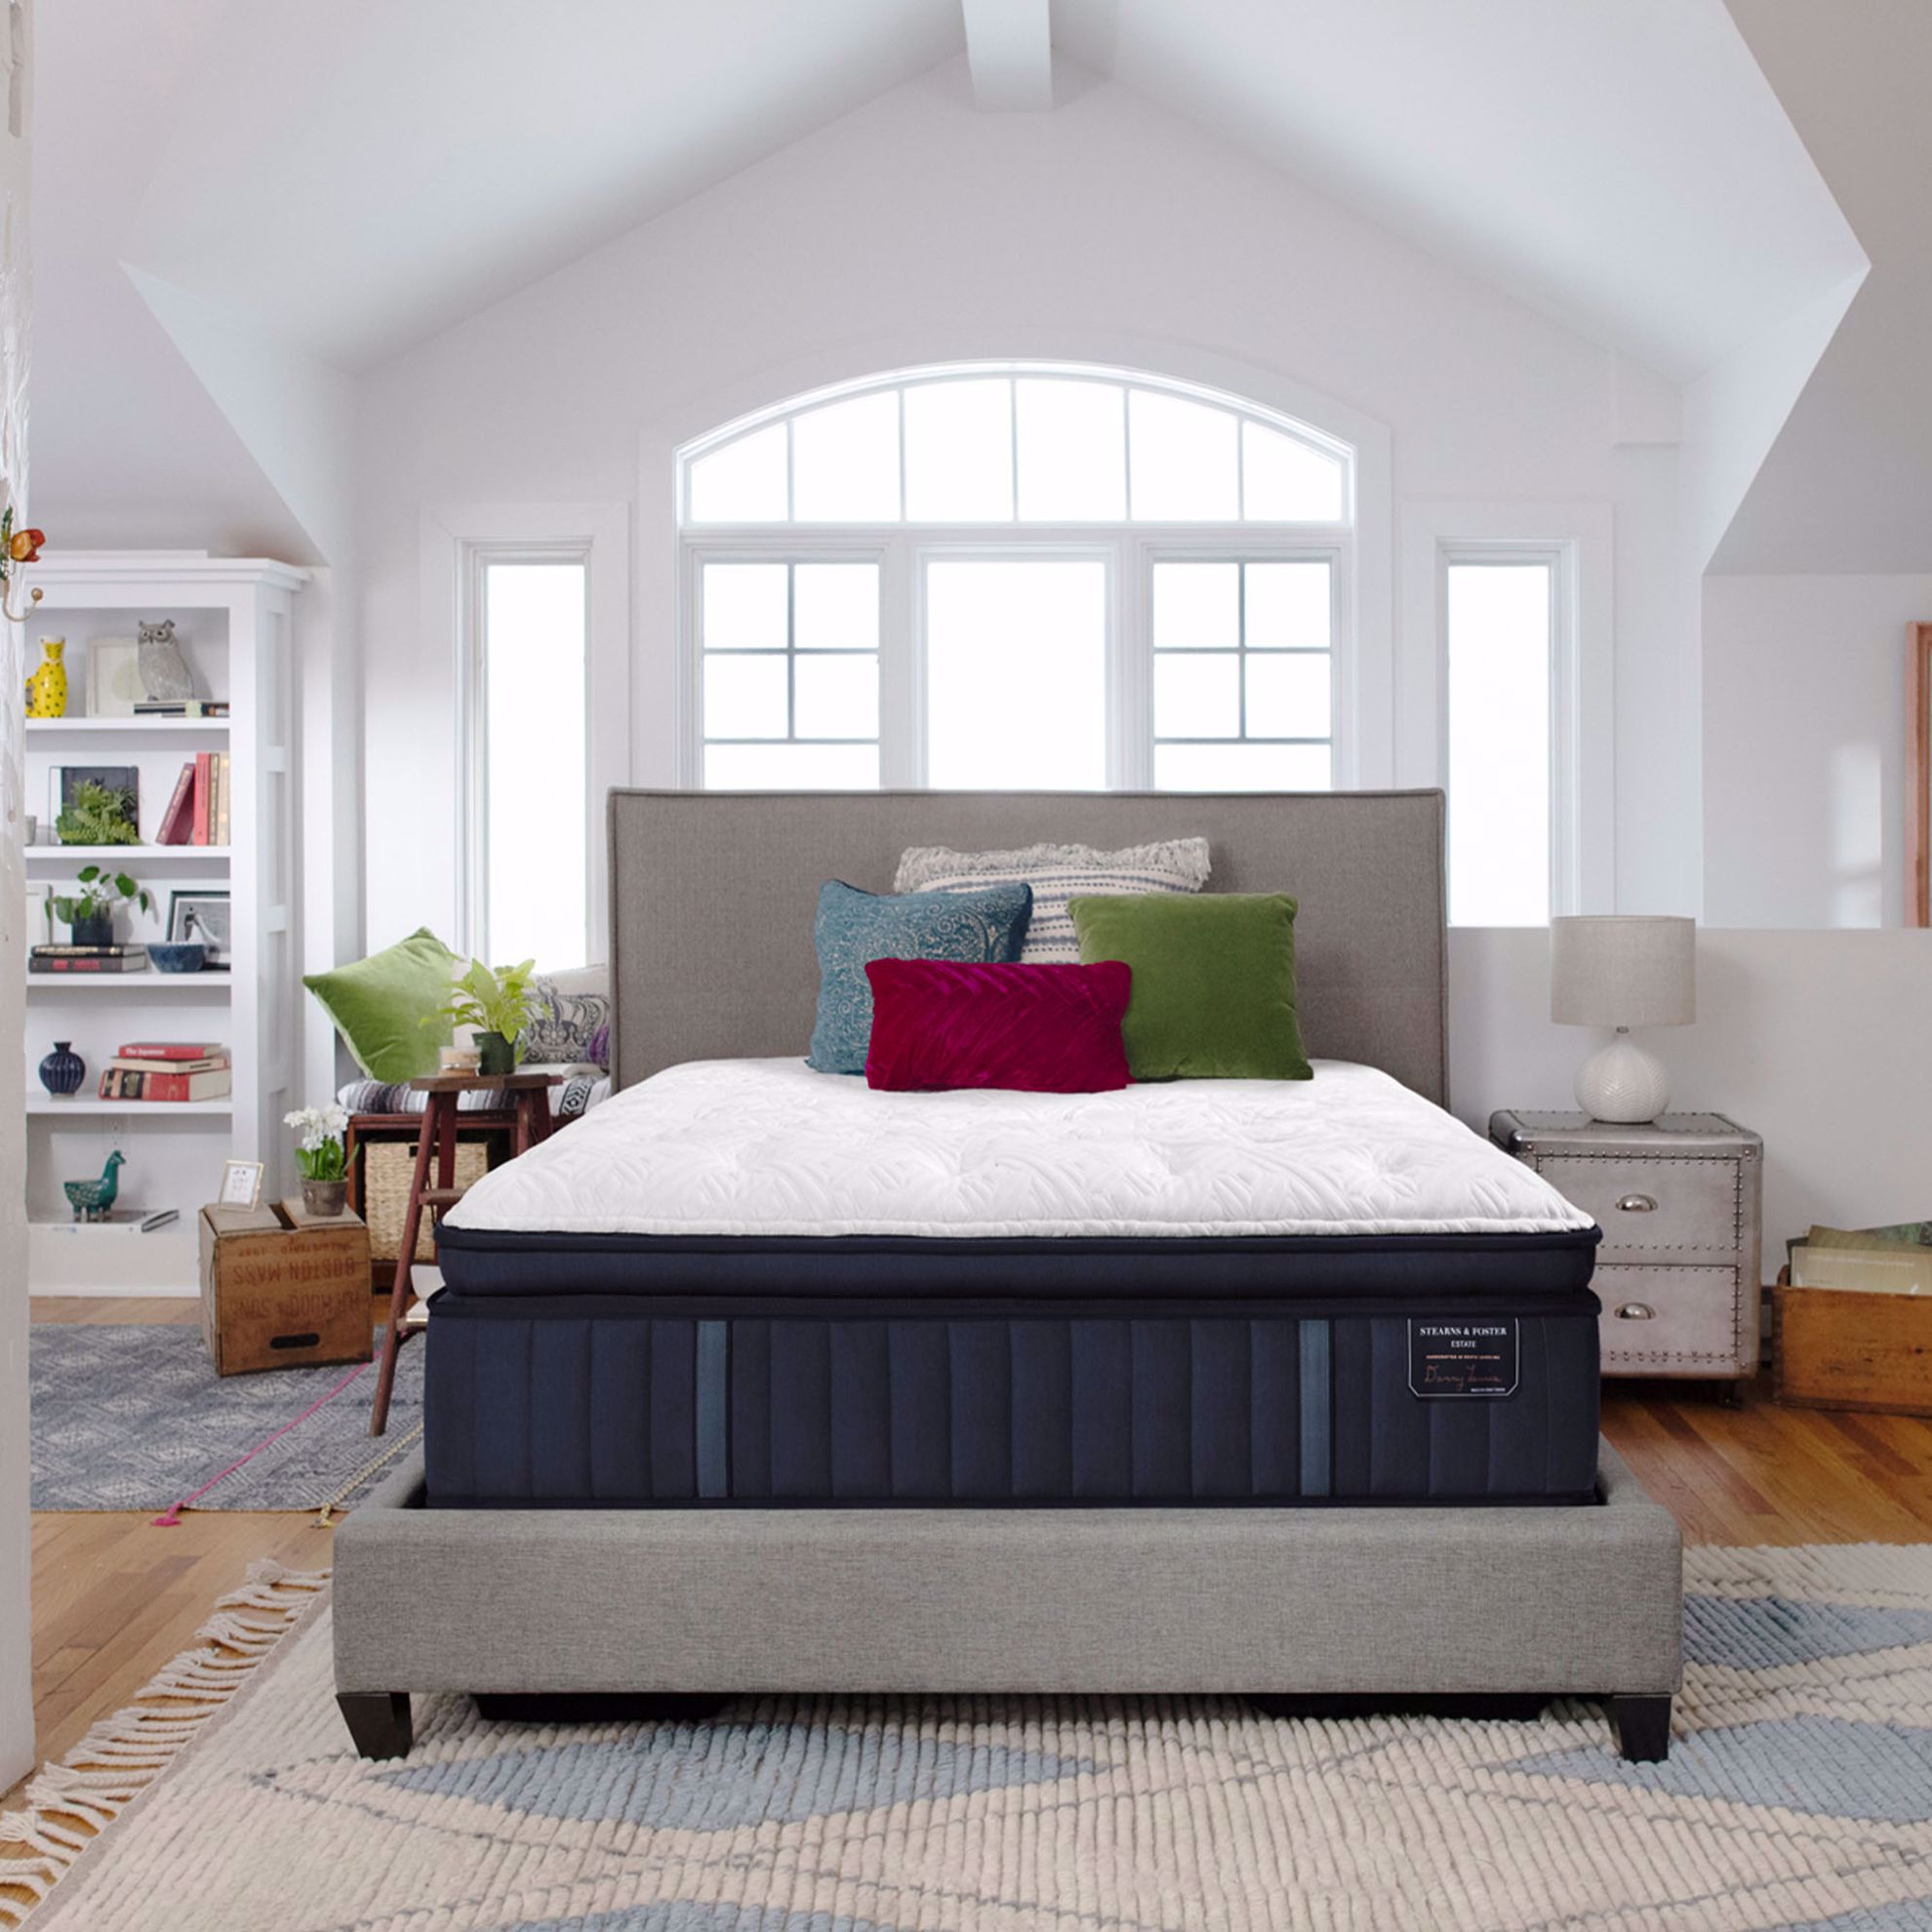 Picture of Stearns & Foster Rockwell Luxury Plush Euro Pillowtop Full Mattress